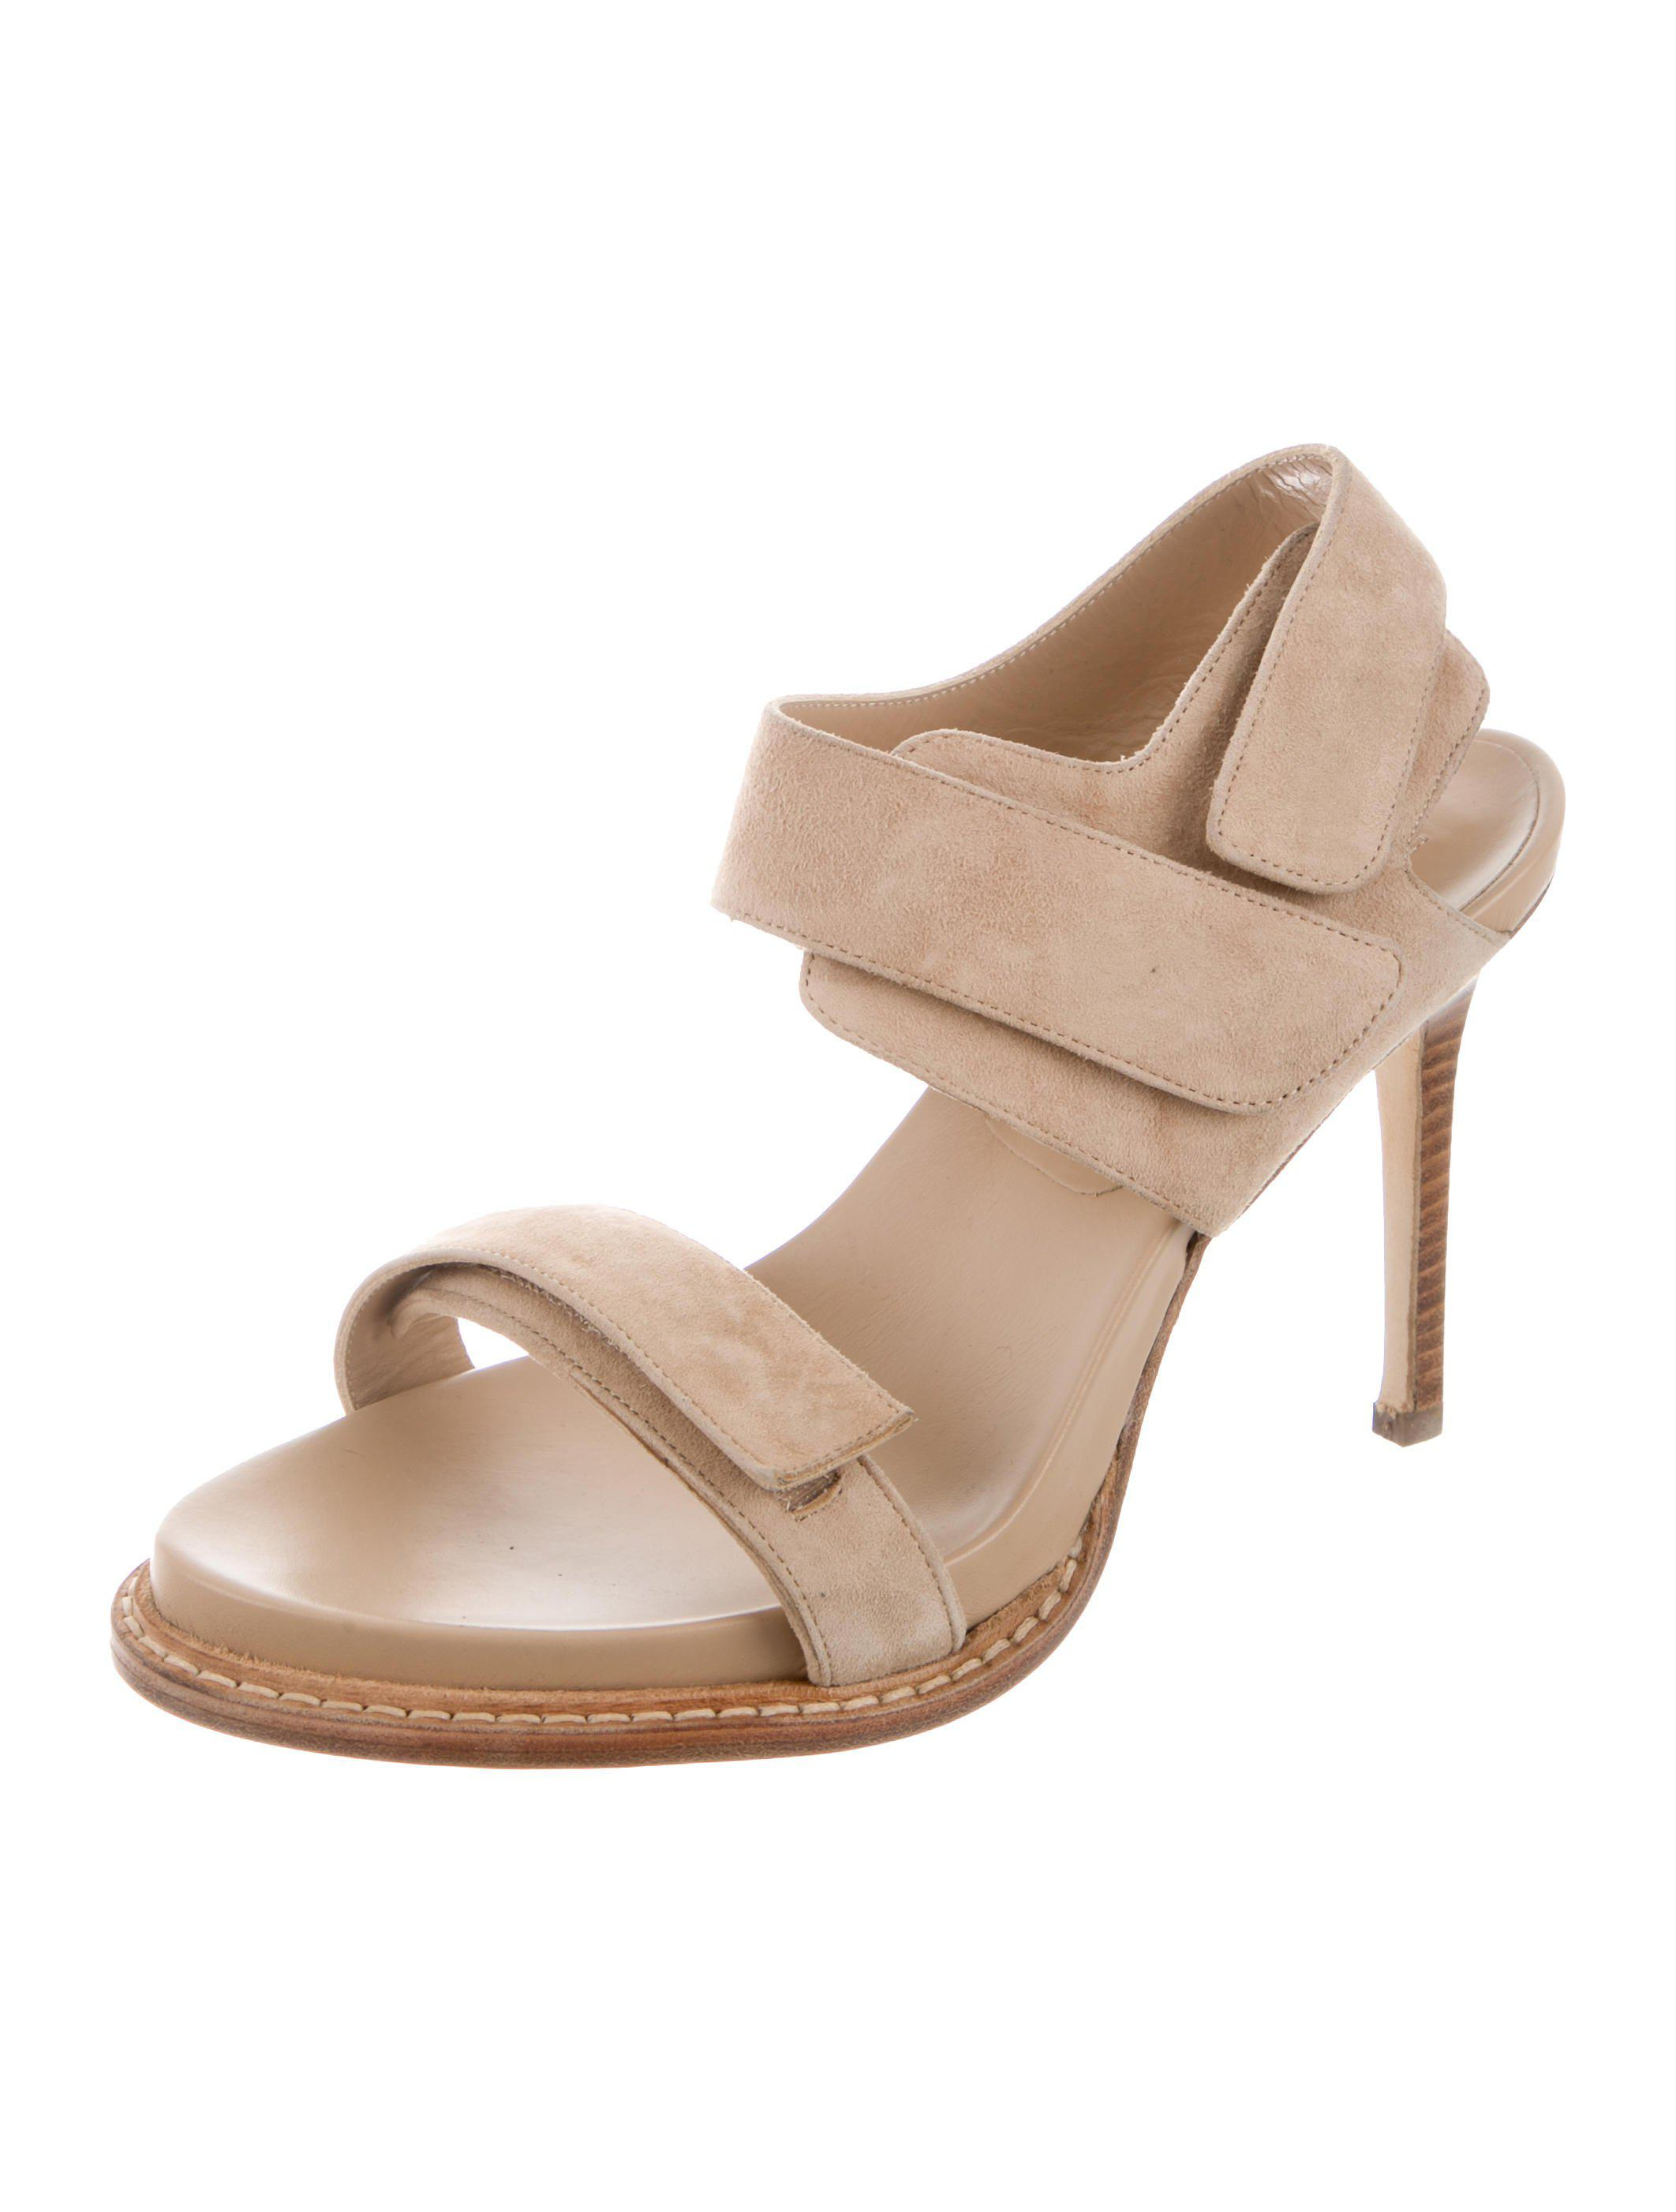 Ann Demeulemeester Multistrap Suede Sandals w/ Tags comfortable for sale outlet wiki cheapest Q6cklaCL